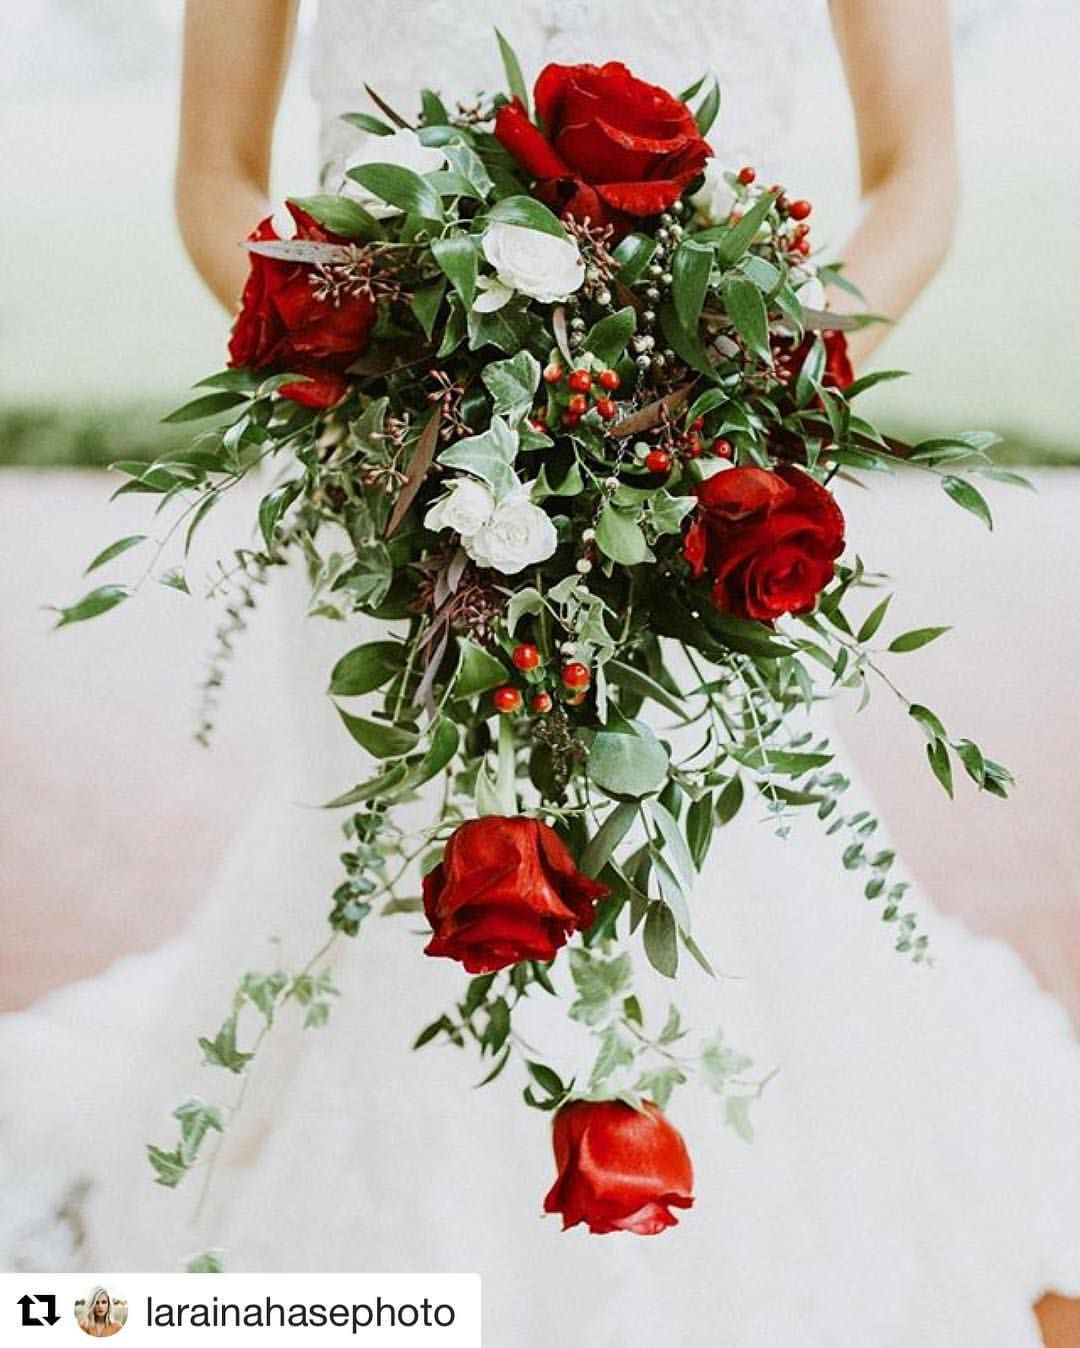 "The Idid Shop on Instagram: ""We are loving this Christmas bridal bouquet from @thebloomingcompany @larainahasephoto #christmaswedding #inspo """